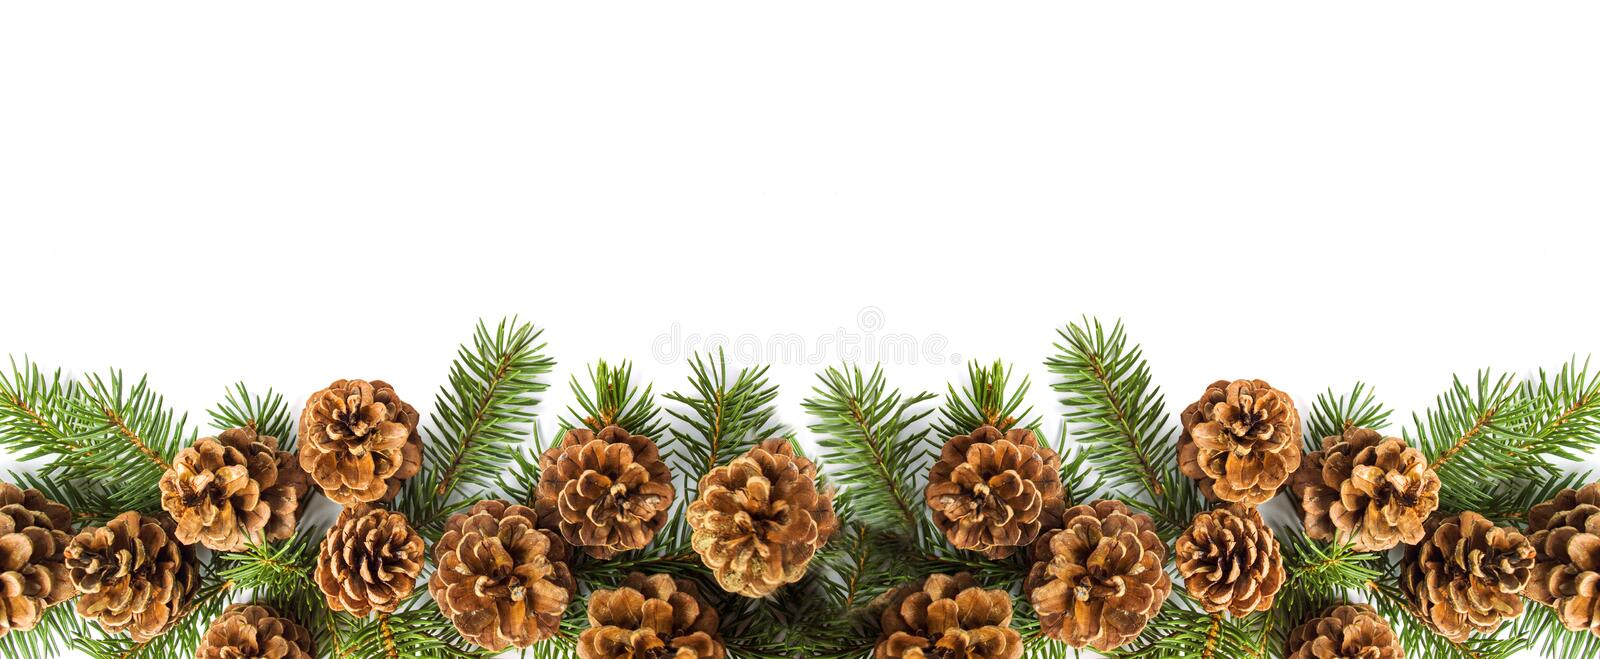 Pine cones festive background with fir branch stock photo